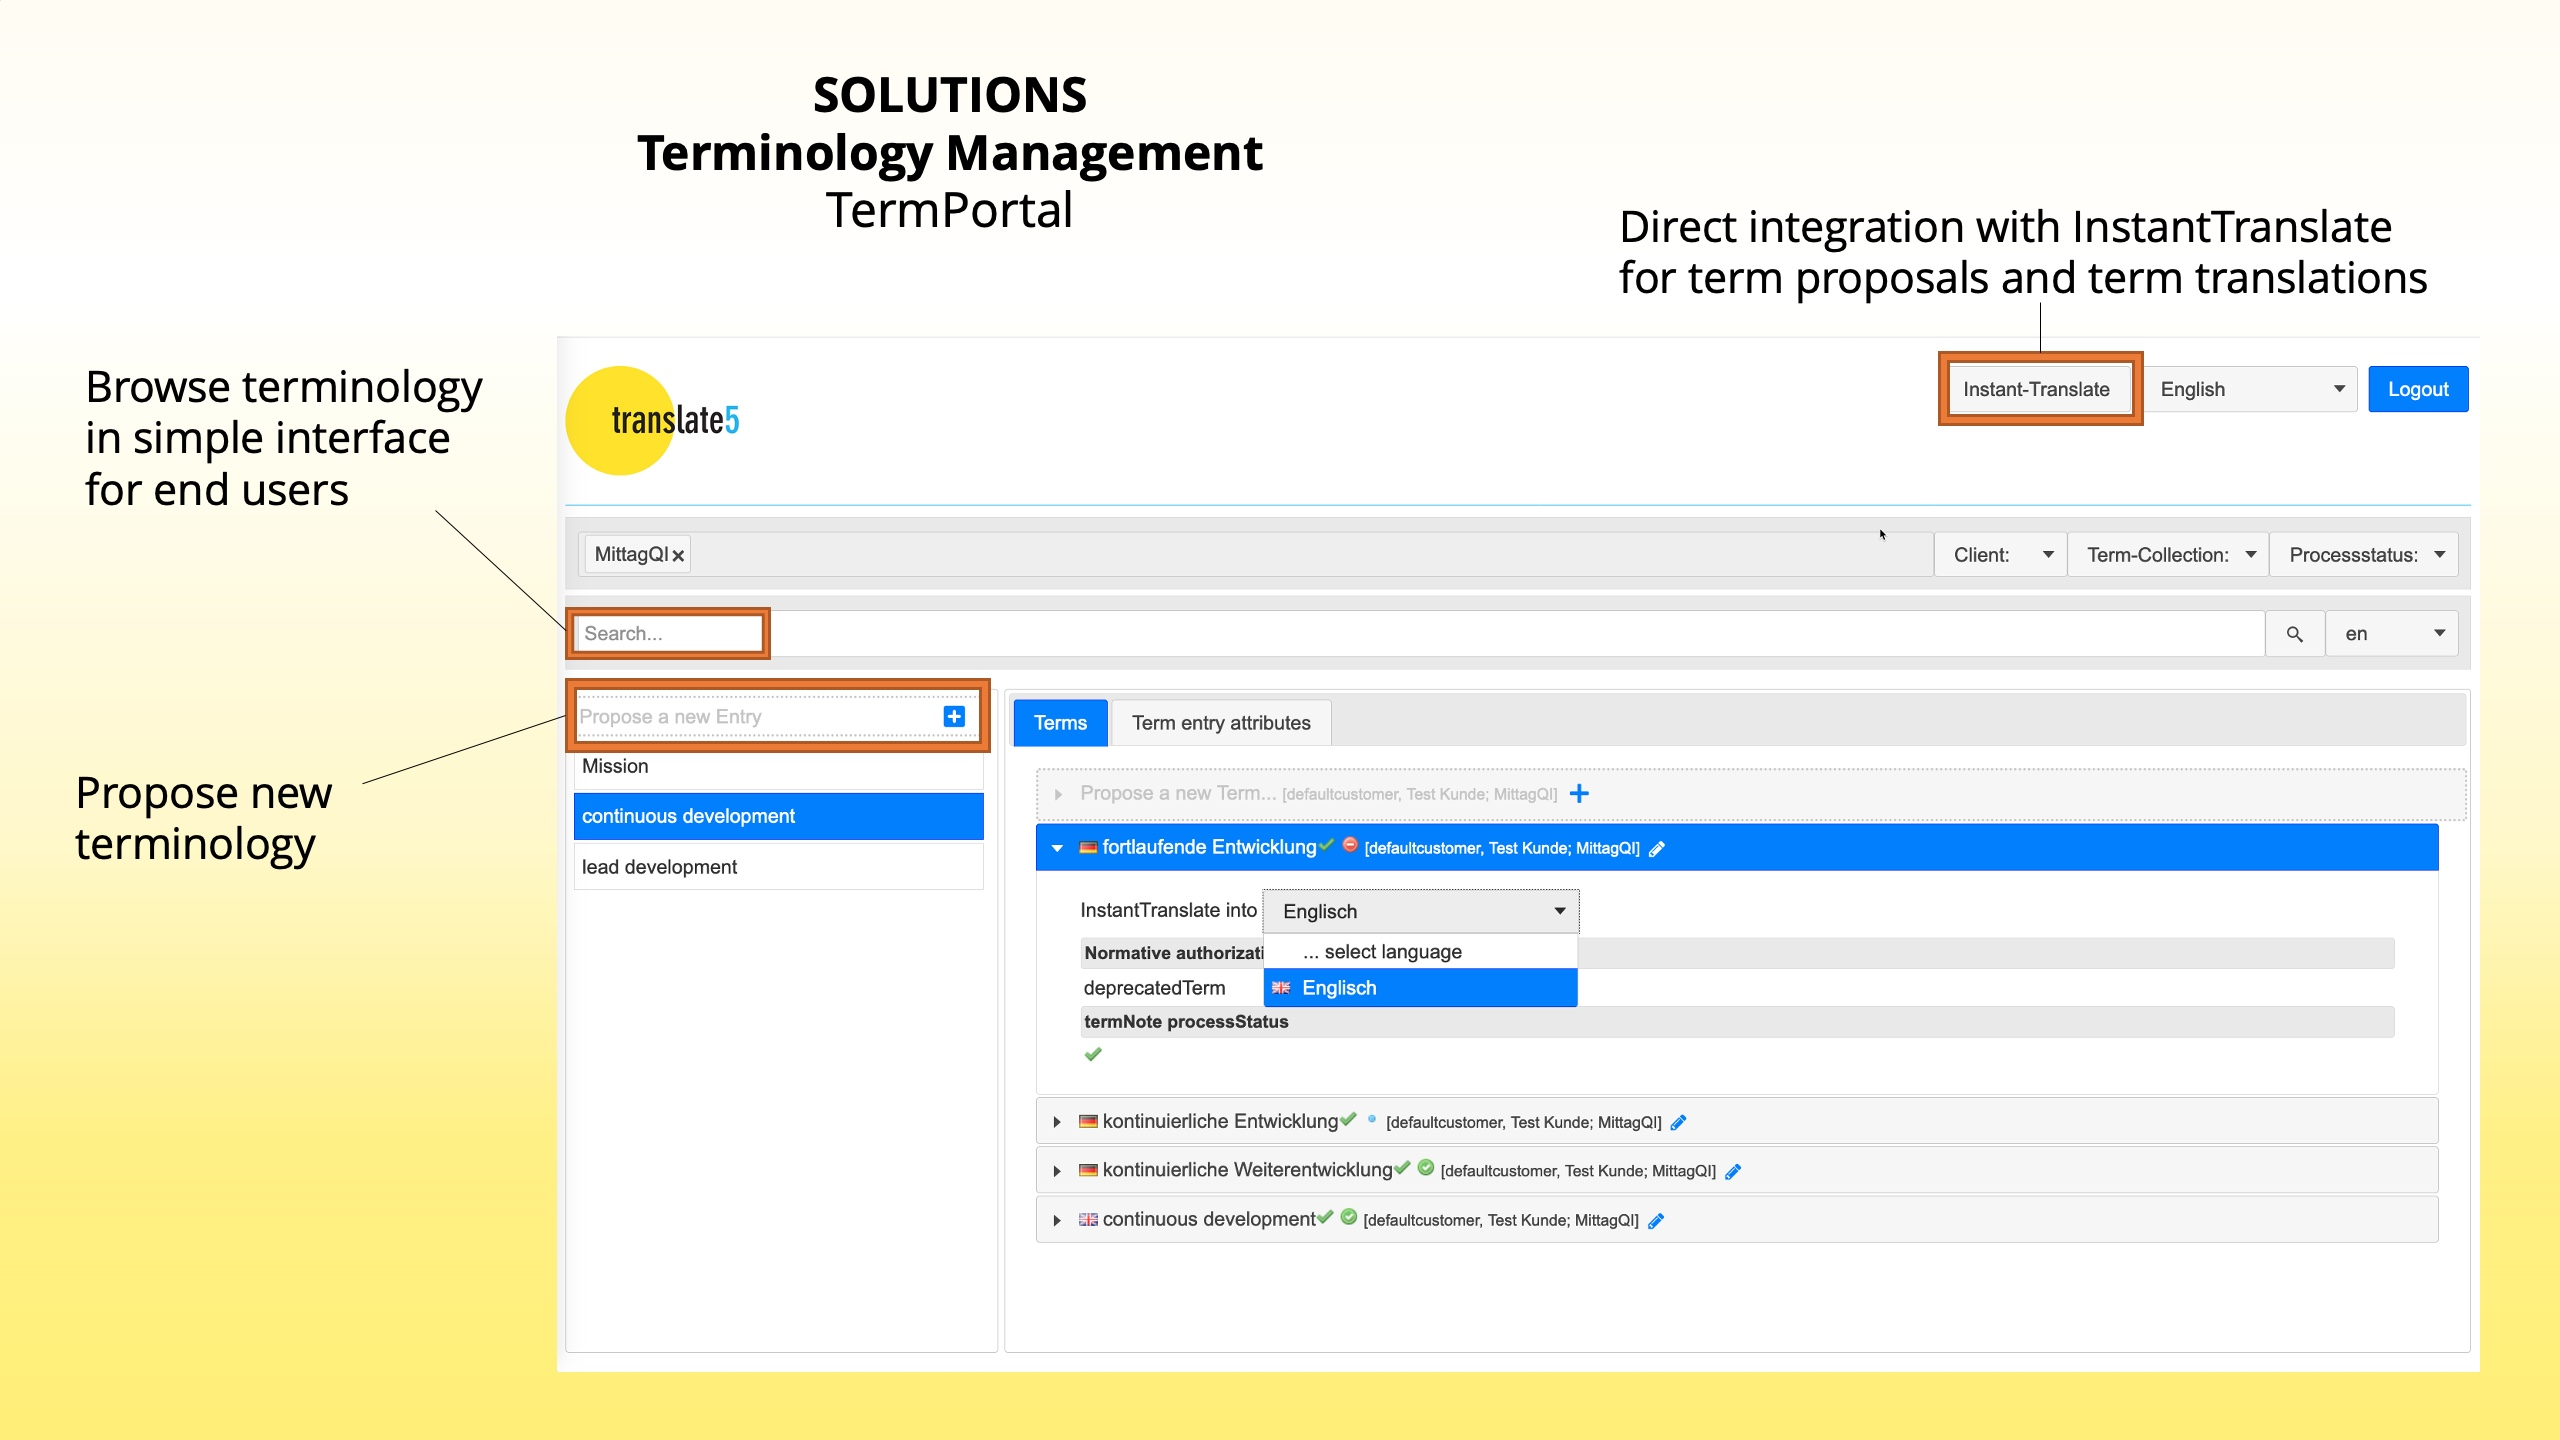 Terminology management with TermPortal